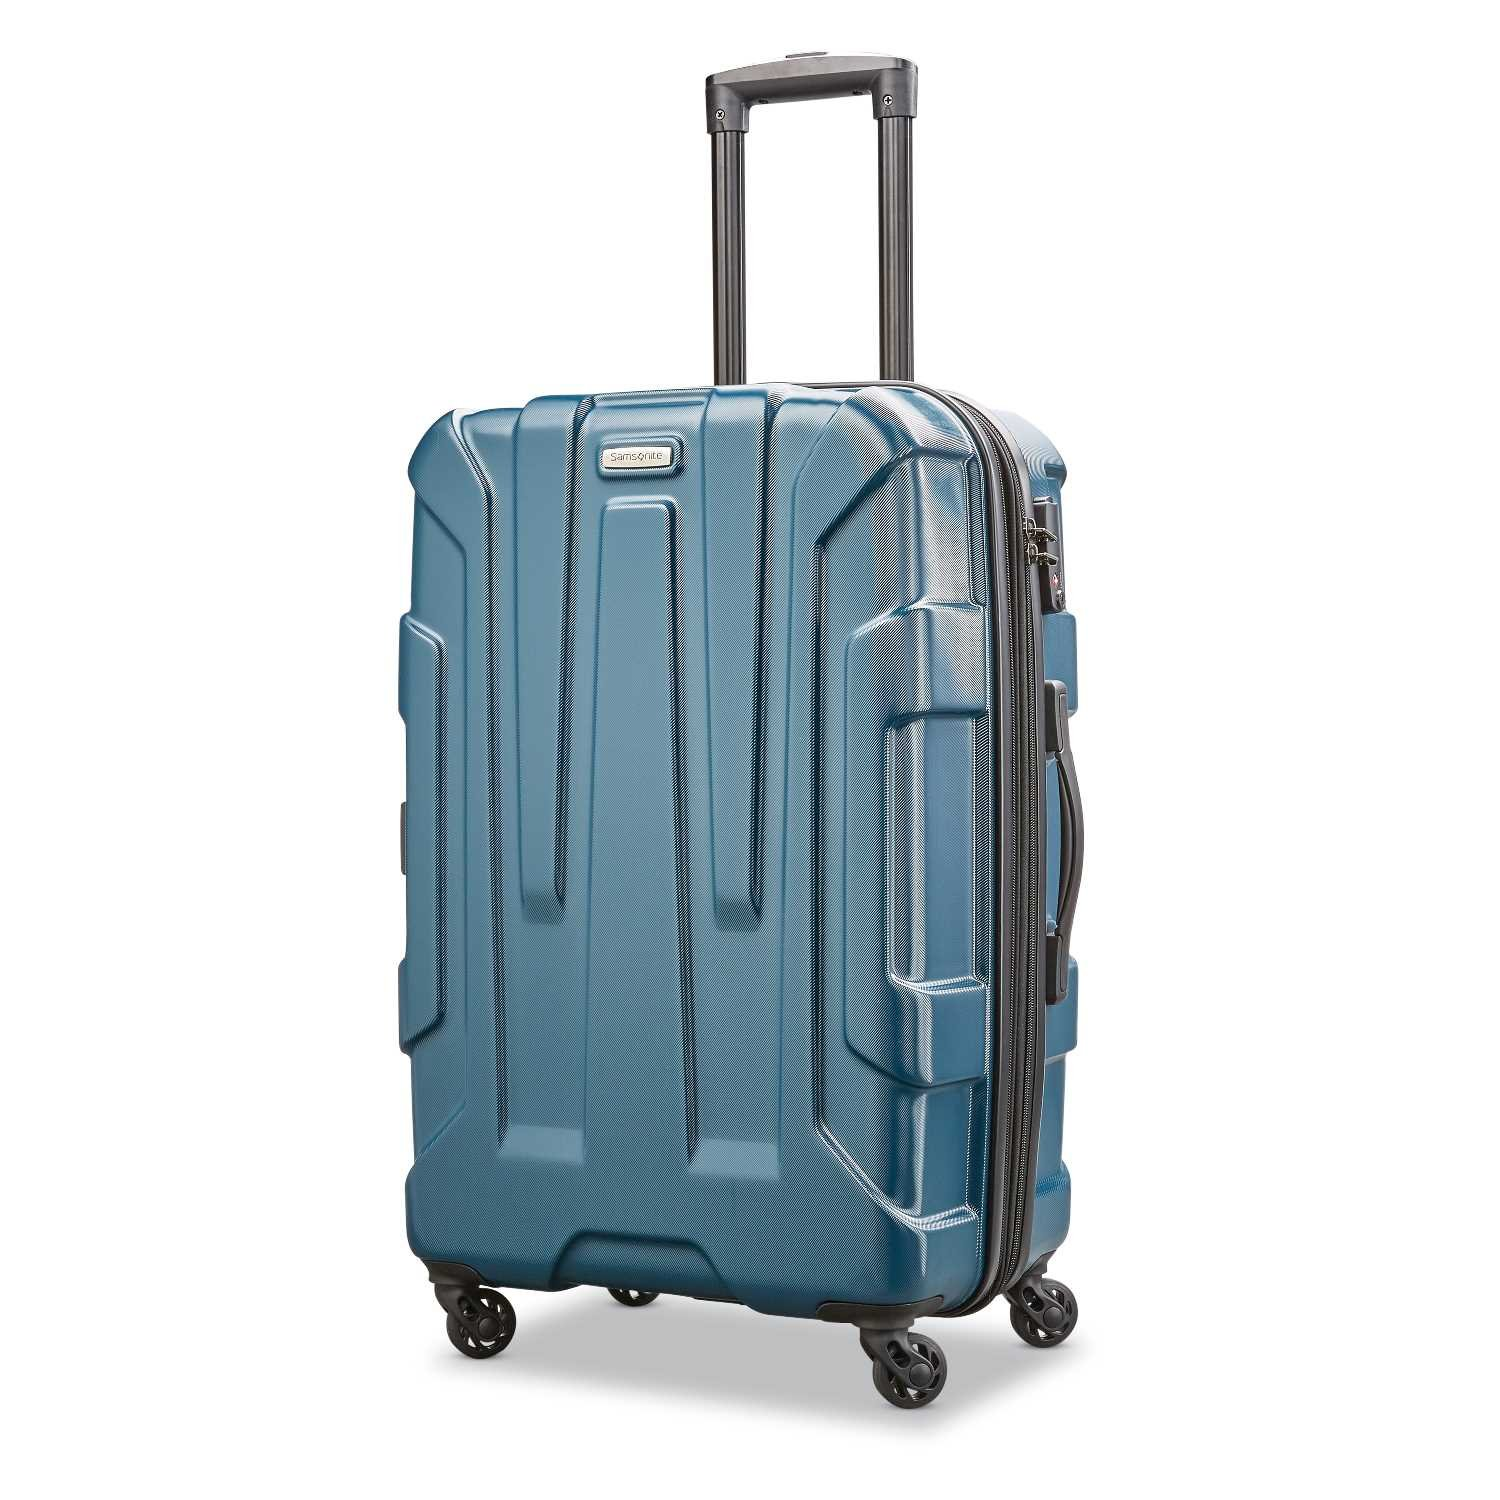 Samsonite Centric Expandable Hardside Checked Luggage with Spinner Wheels, 24 Inch, Teal